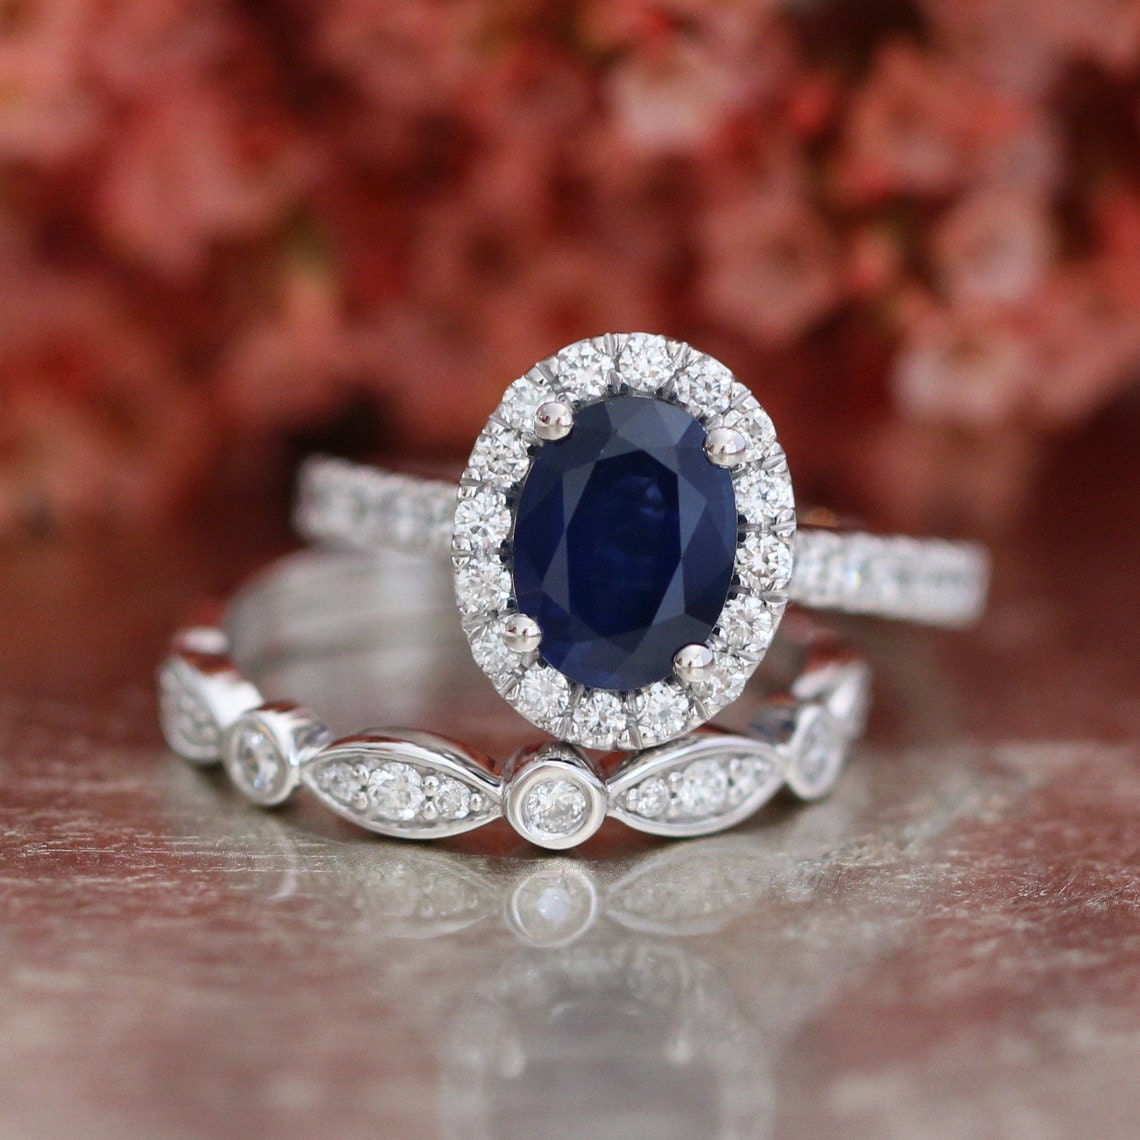 Oval Sapphire Engagement Ring and Bezel Scalloped Diamond